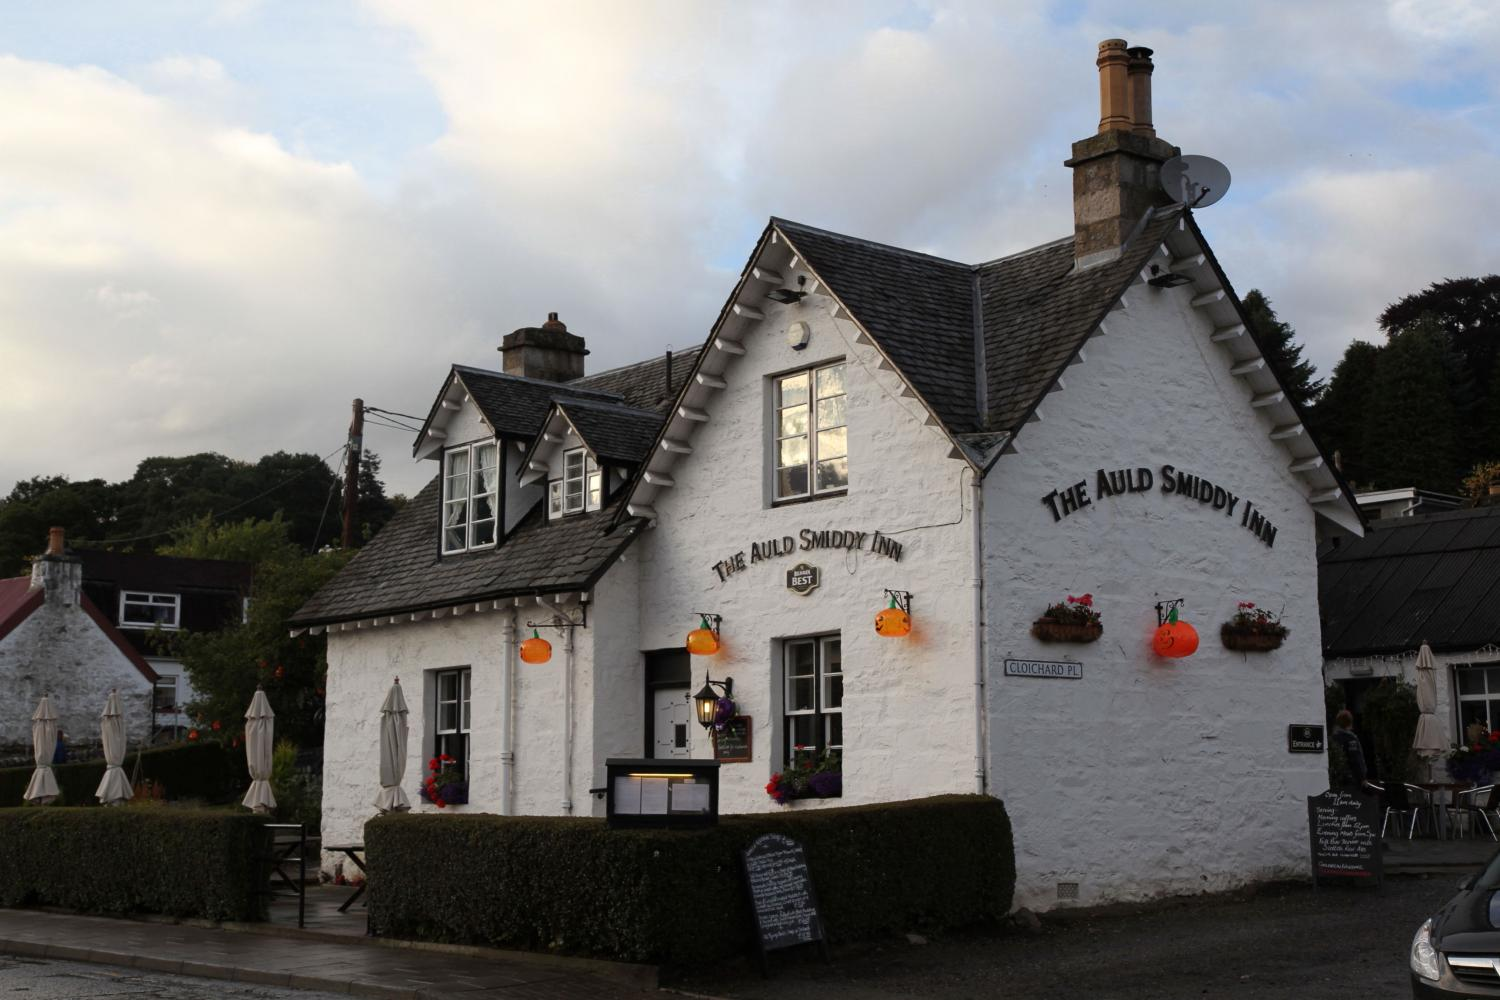 The auld Smiddy Inn in Pitlochry